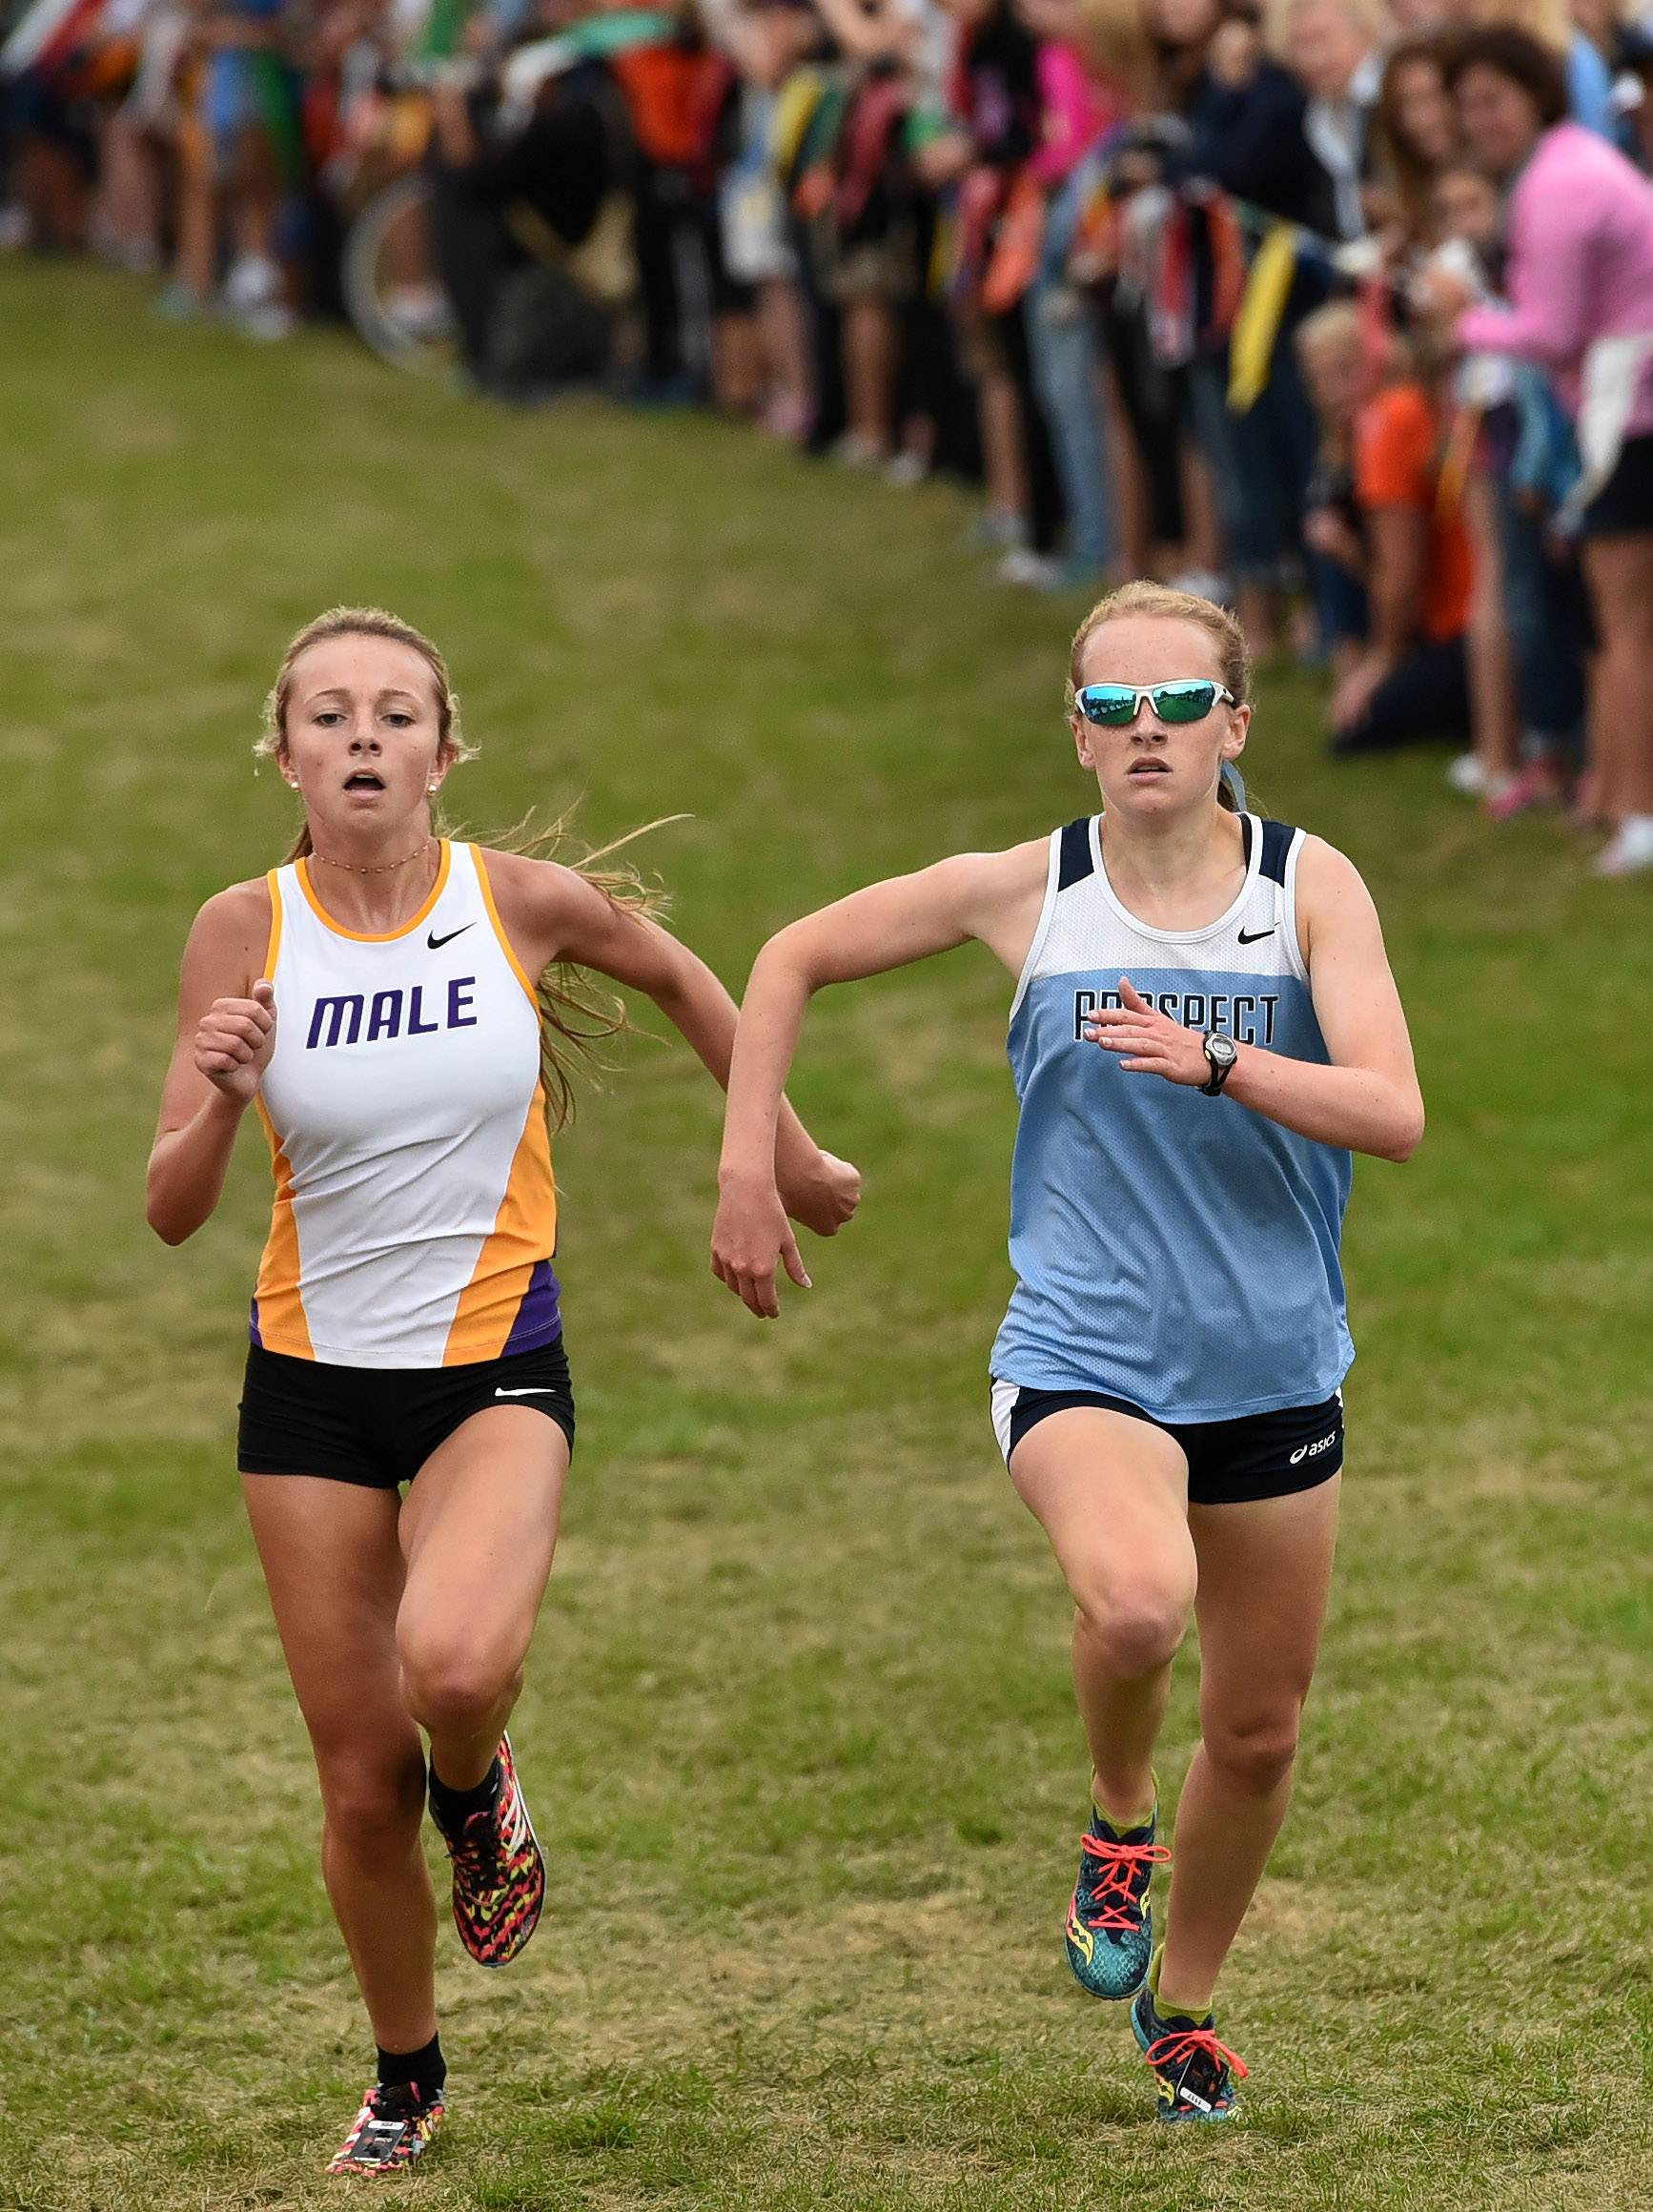 Brooke Wilson of Prospect, right, is stride for stride with Kaitlyn Lacy of Louisville Male High School down the stretch leading to the finish. Wilson finished second to Lacy in the Palatine Invitational at Deer Grove East Forest Preserve on Saturday.